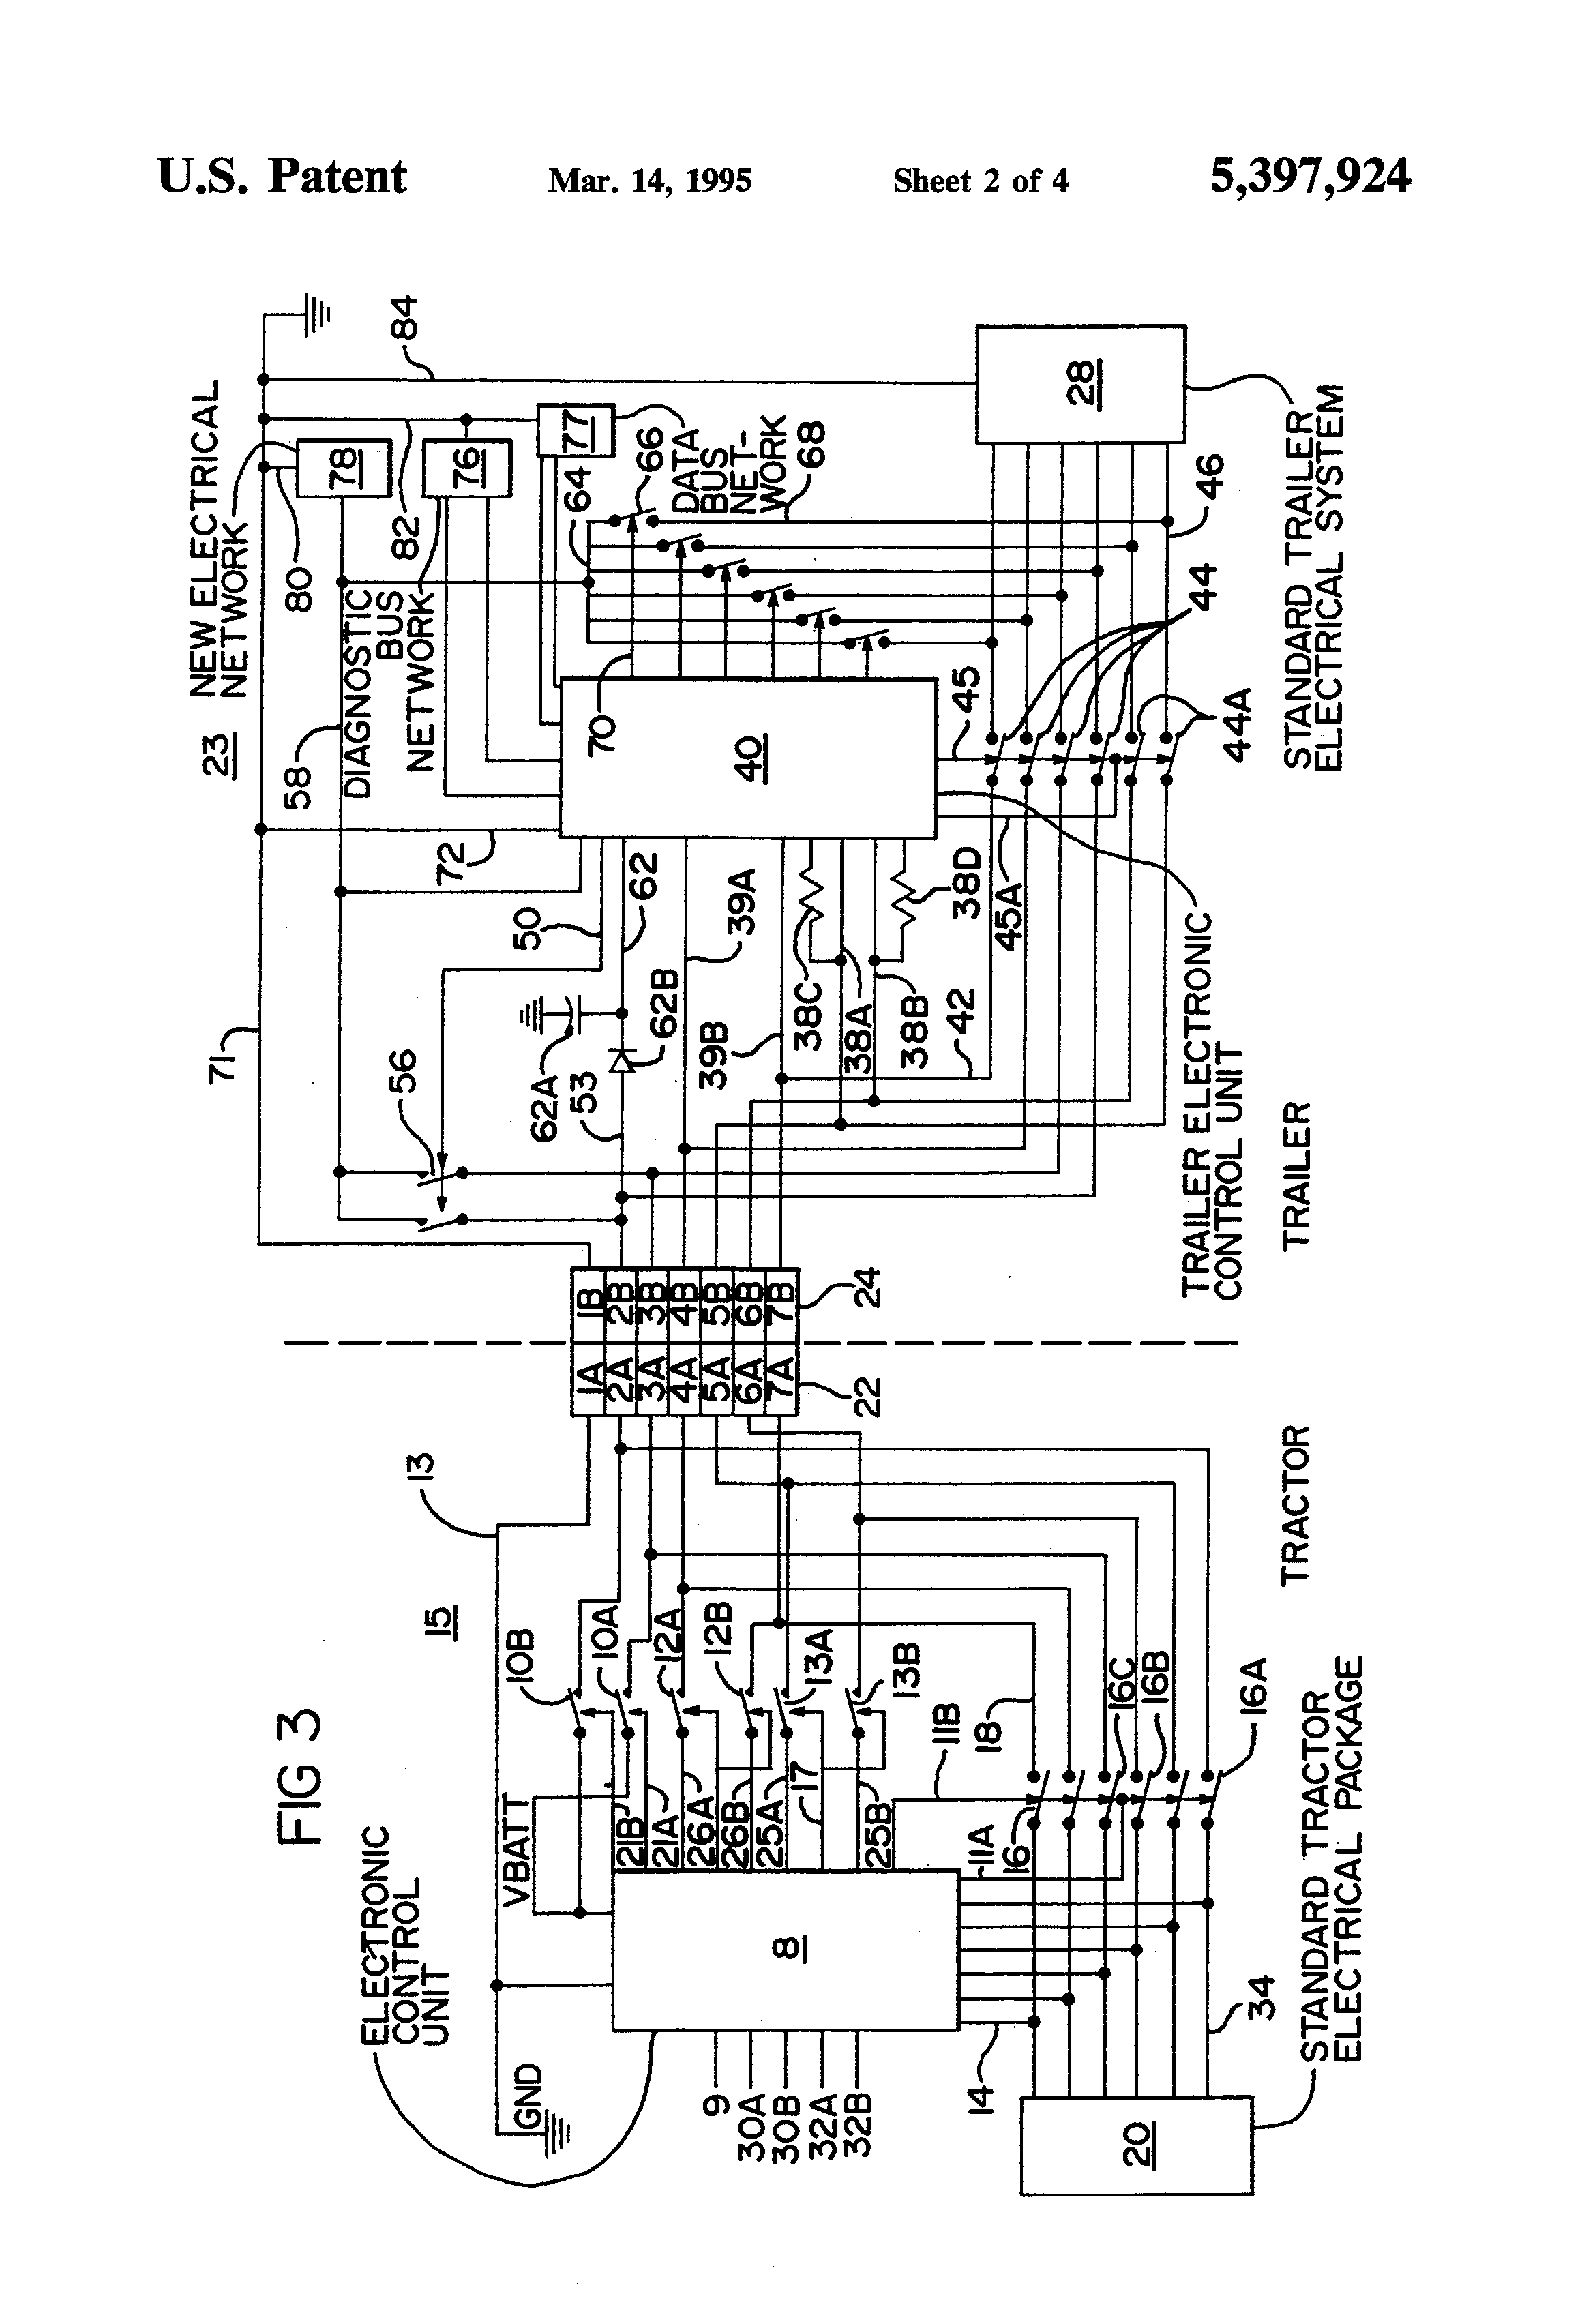 Wabco Wiring Diagrams also Homeostasis Positive Feedback Loop Diagram also EP0546370A1 moreover Freightliner Jake Ke Wiring Diagram together with E Version Ecu. on wabco vcs ii wiring diagram